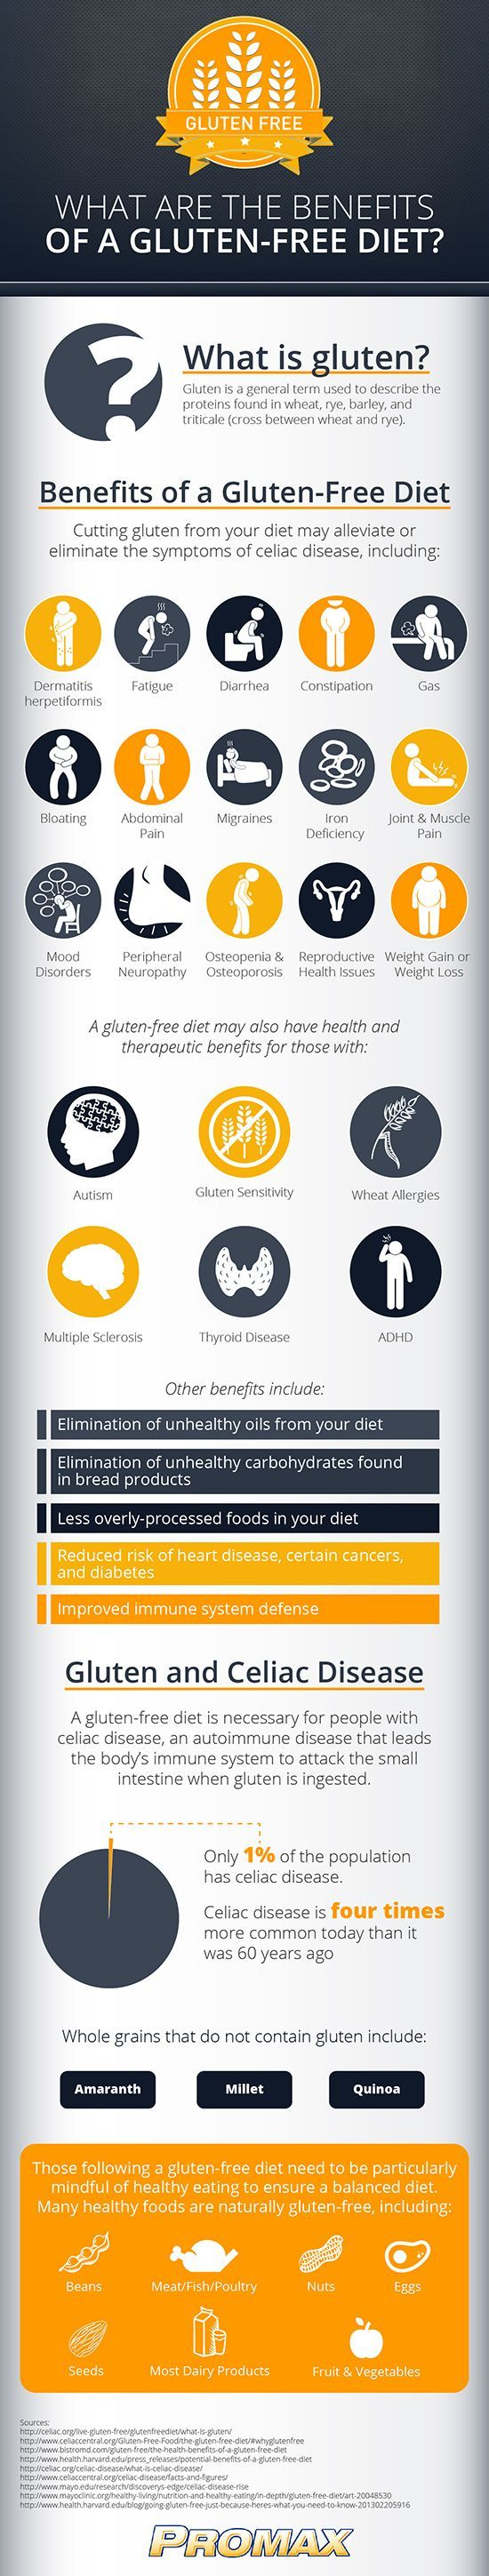 What Are the Benefits of a Gluten-Free Diet? - A gluten-free diet is necessary for people with celiac disease and can be beneficial for those with autism, ADHD or people with wheat allergies. -